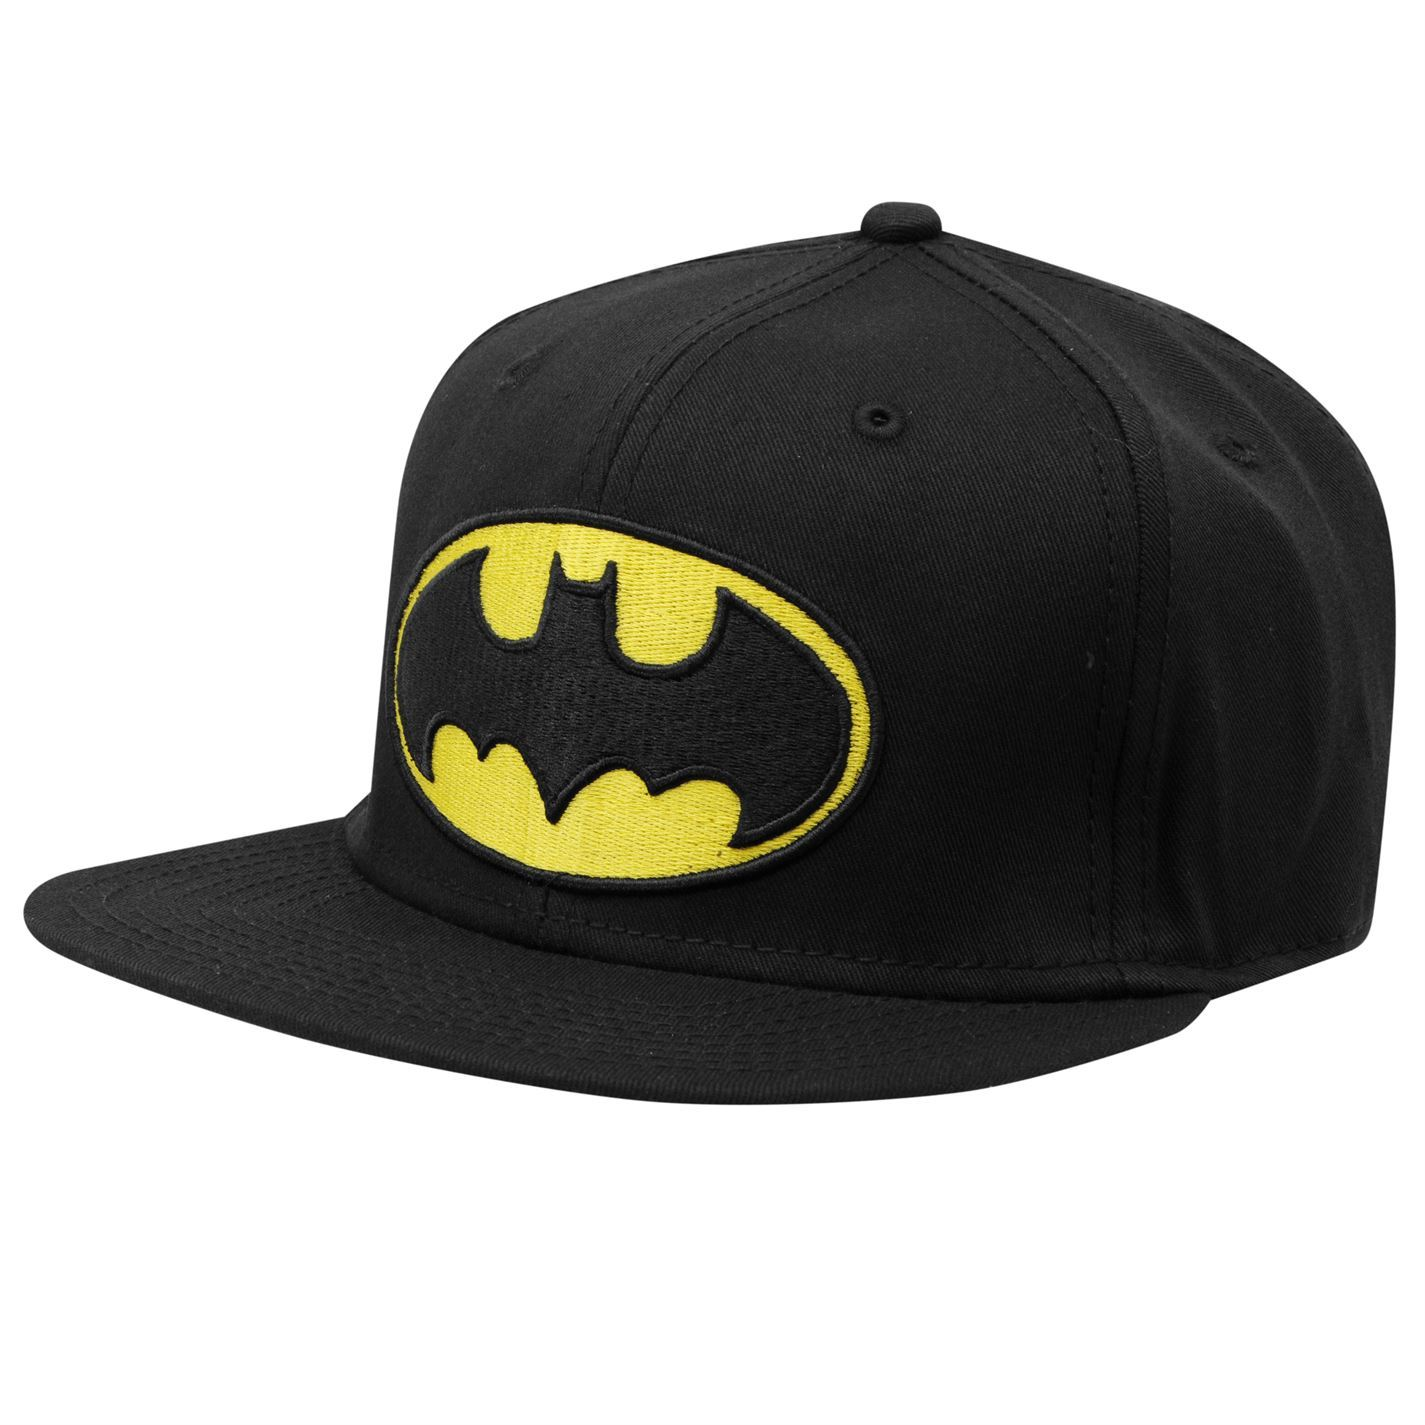 dc comics batman snap back baseball cap black yellow mens